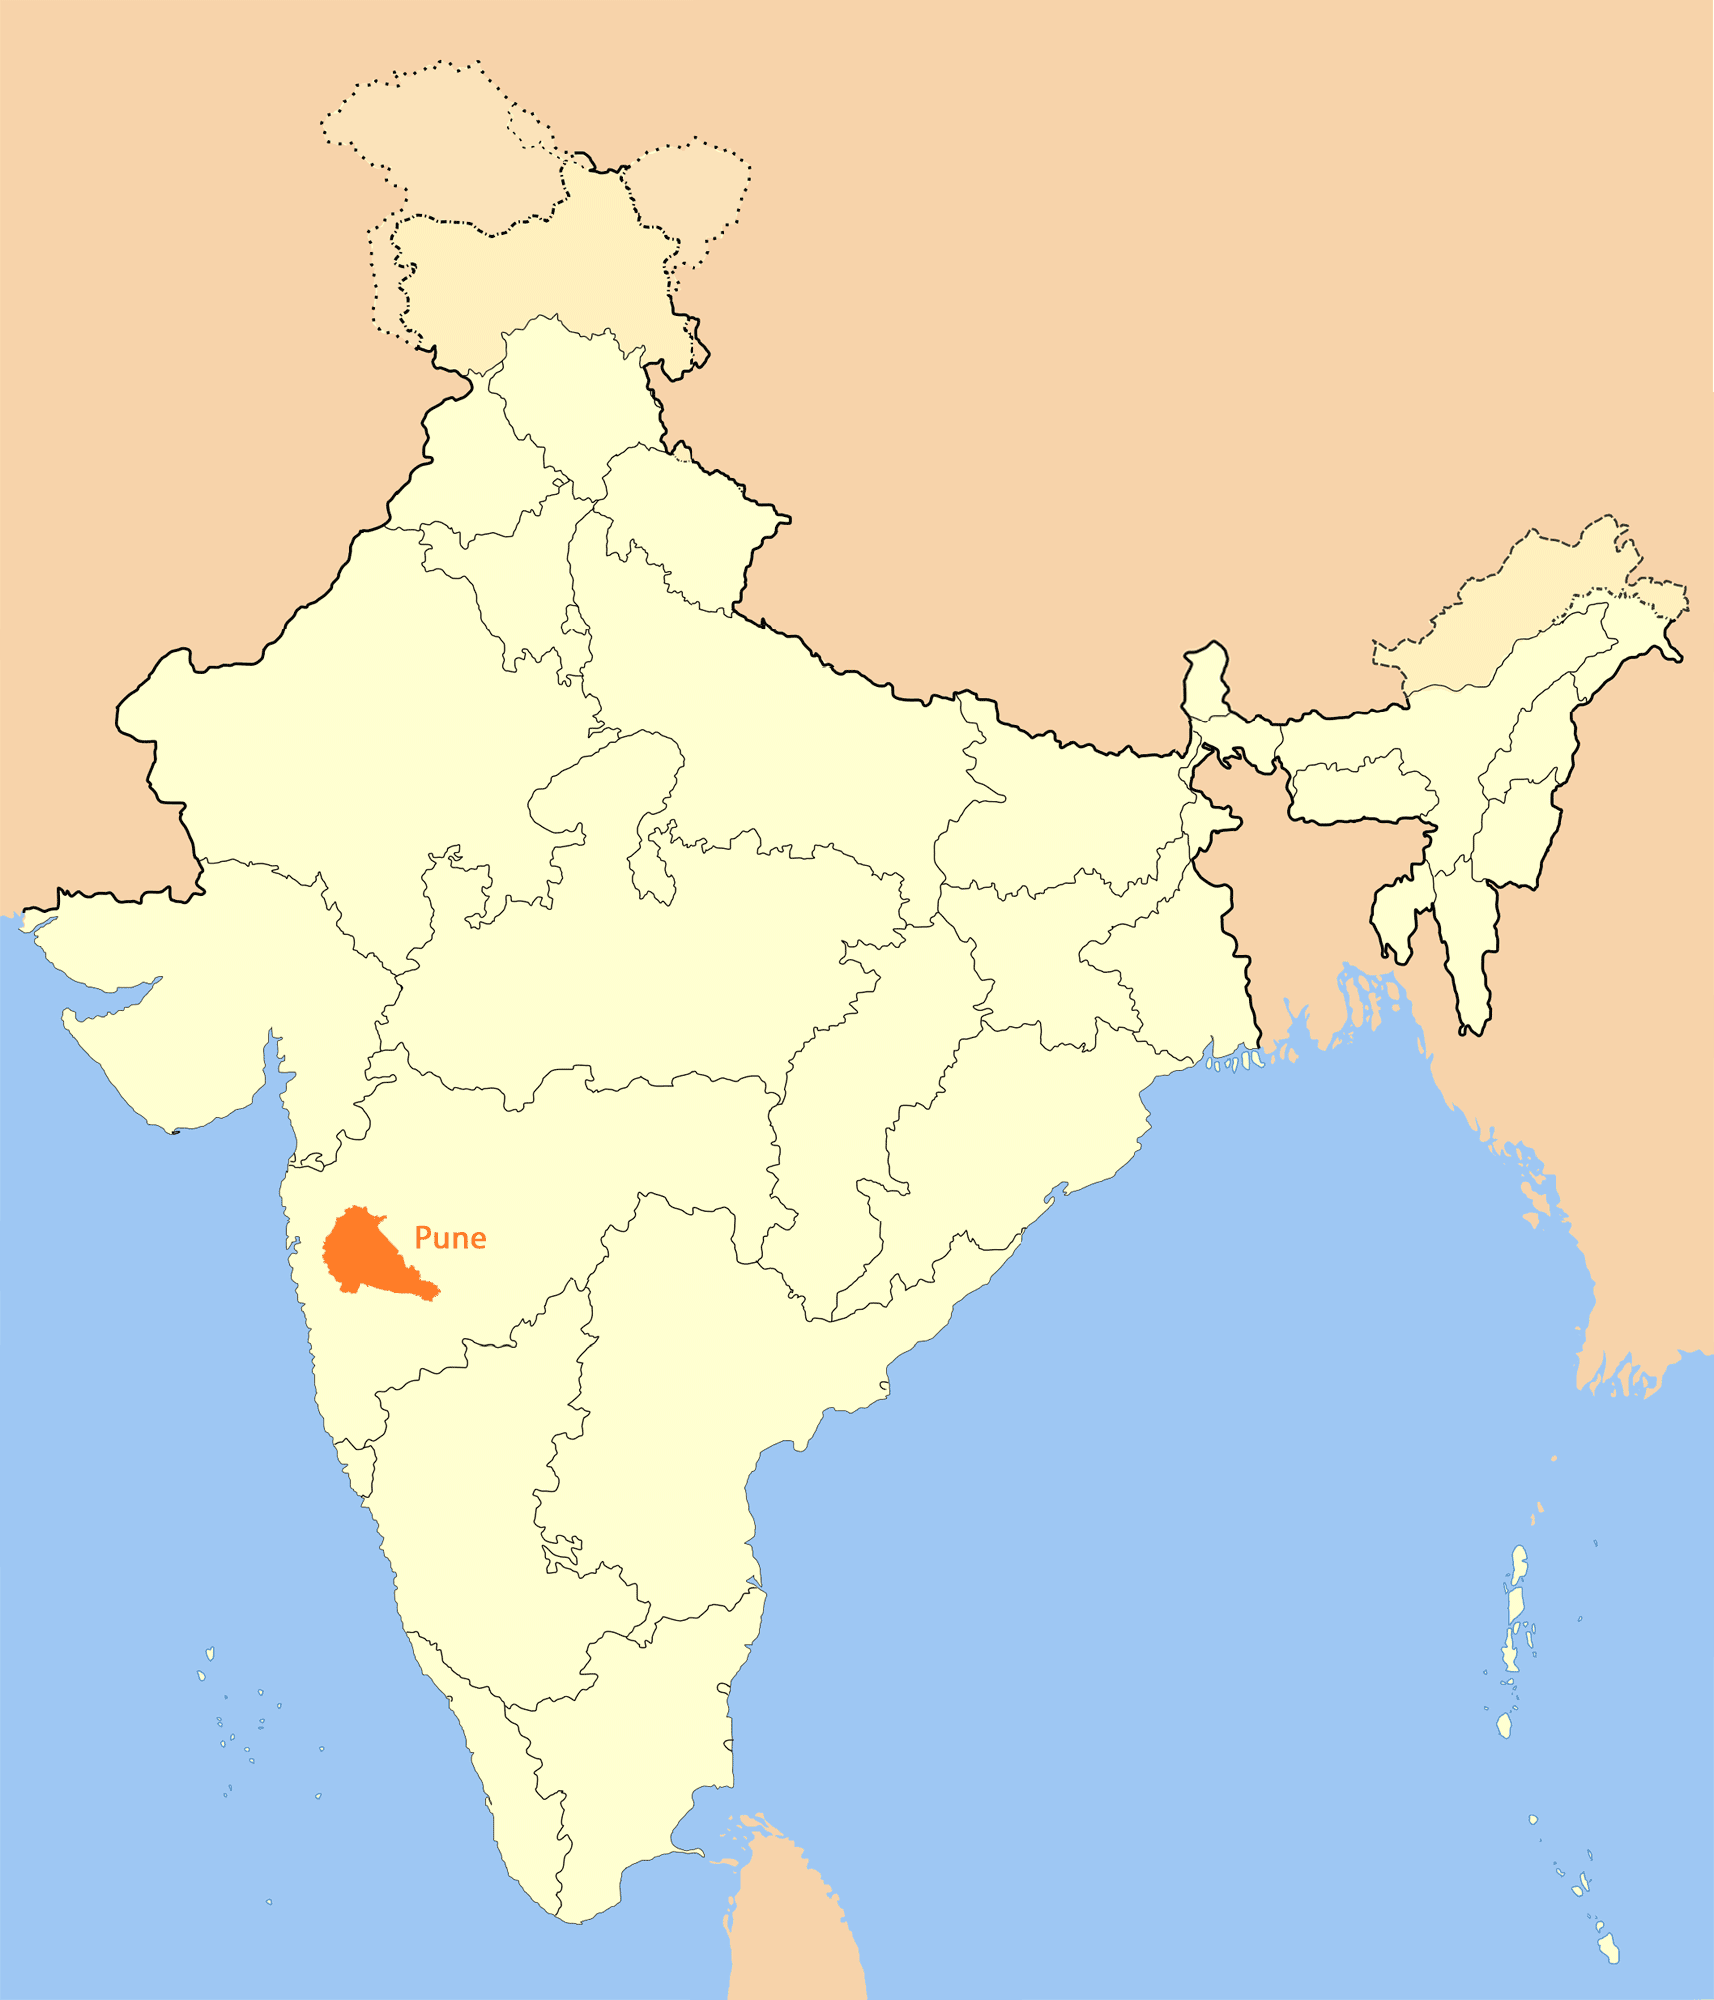 Location Map of Pune